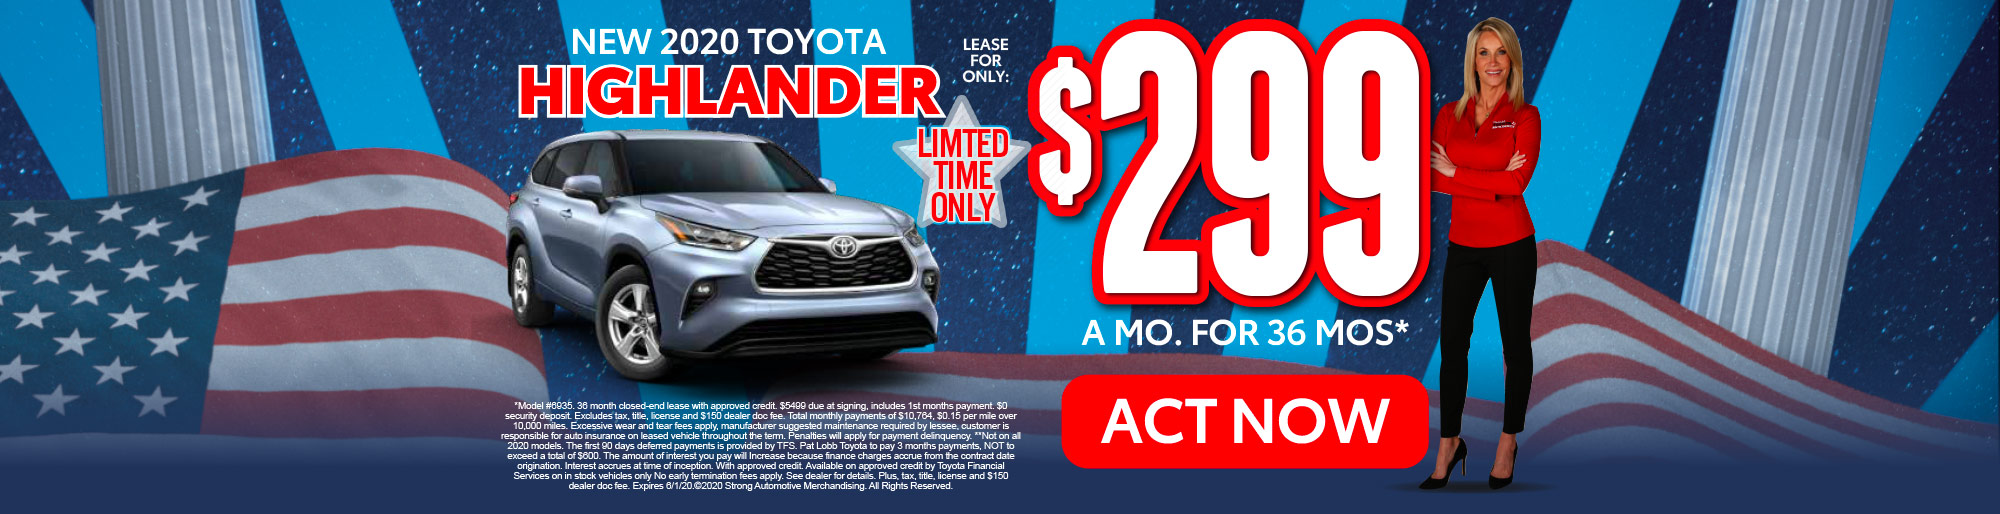 lease a new Highlander for only $299/mo* act now